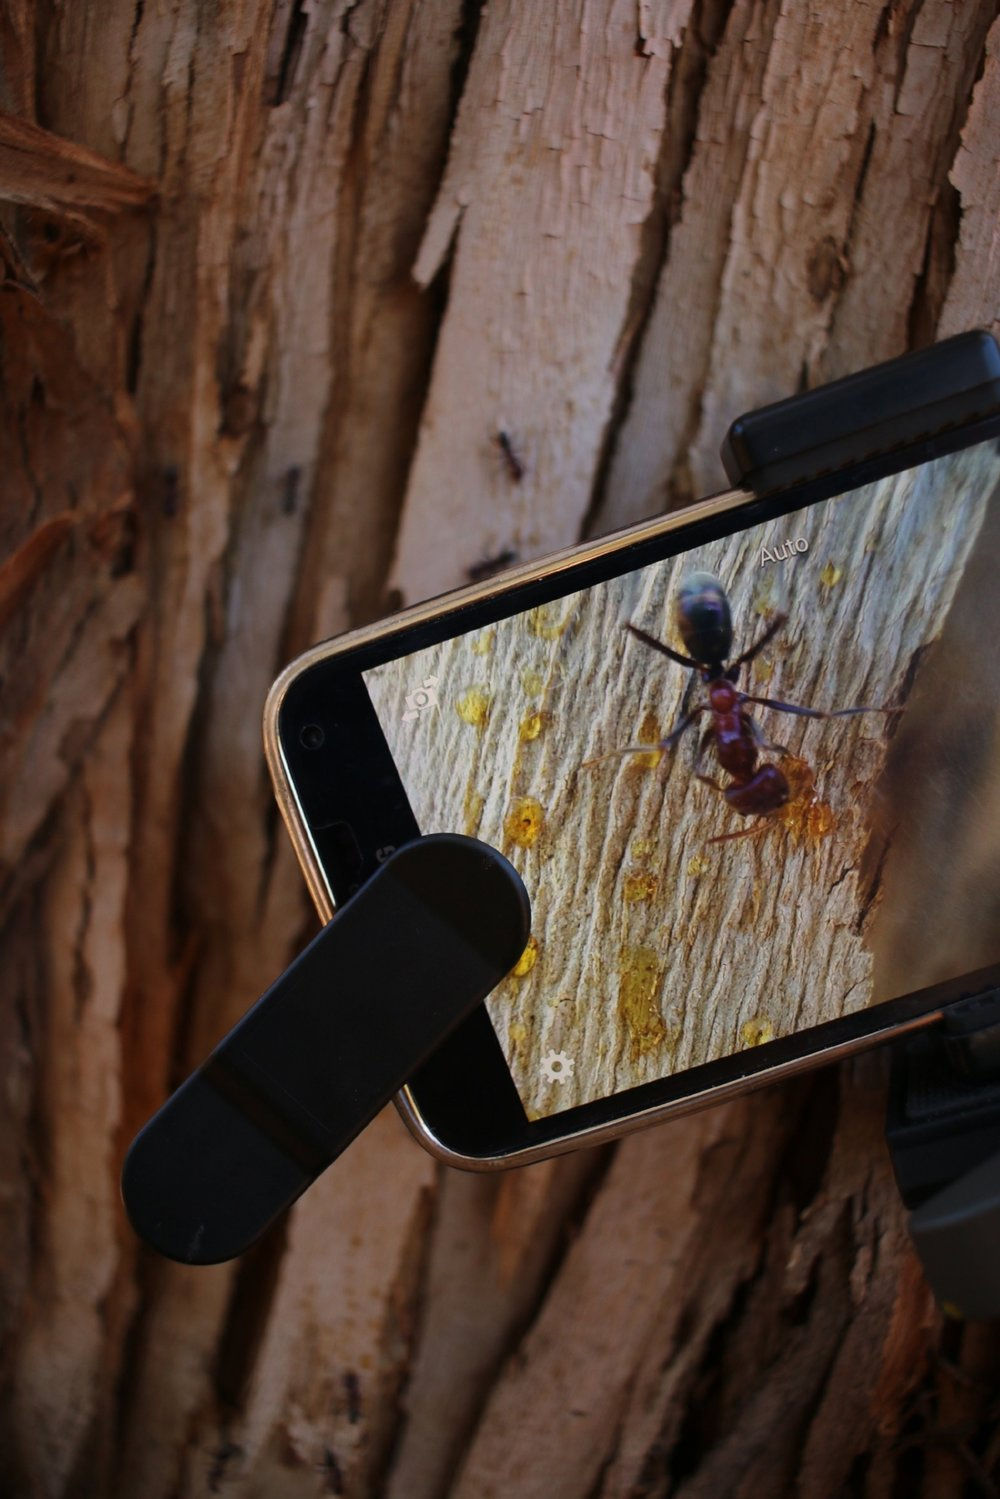 Shooting macro photography on ants and tree sap with the Samsung Galaxy s5 and the SnapLens Macro Pro Lens